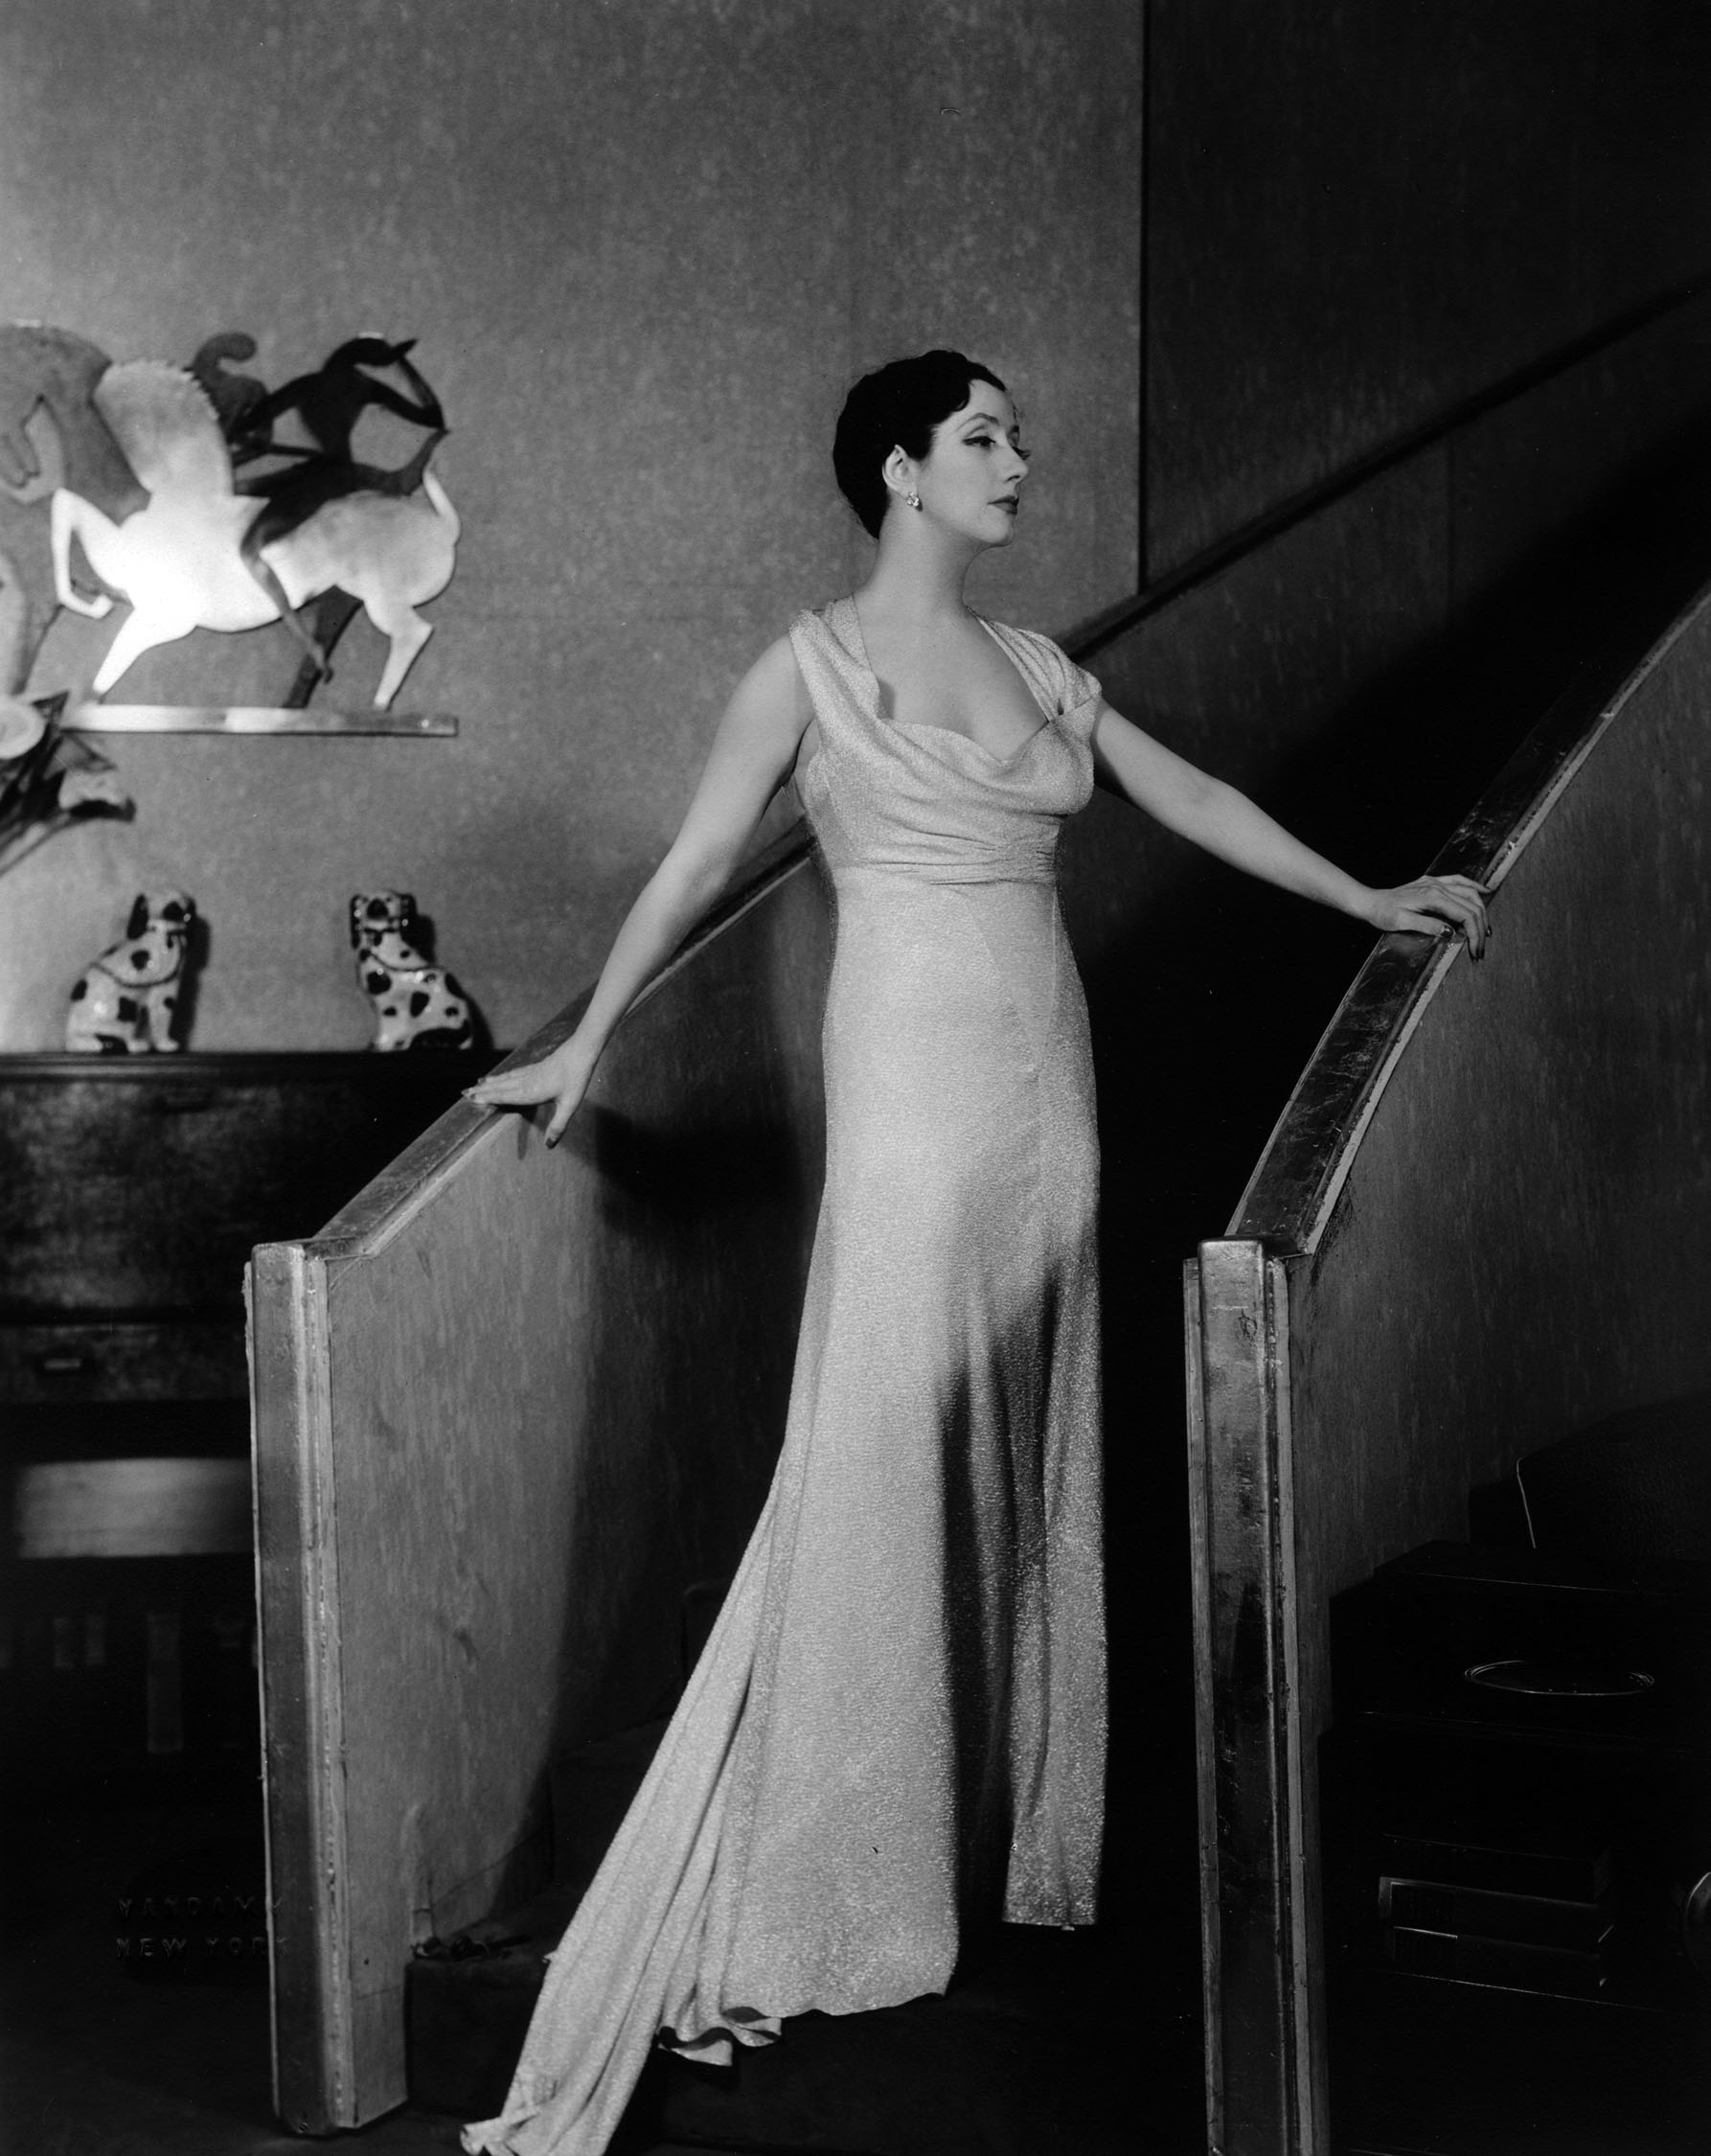 Lynne Fontanne (Gilda) on the elegant stairs of the New York penthouse set.